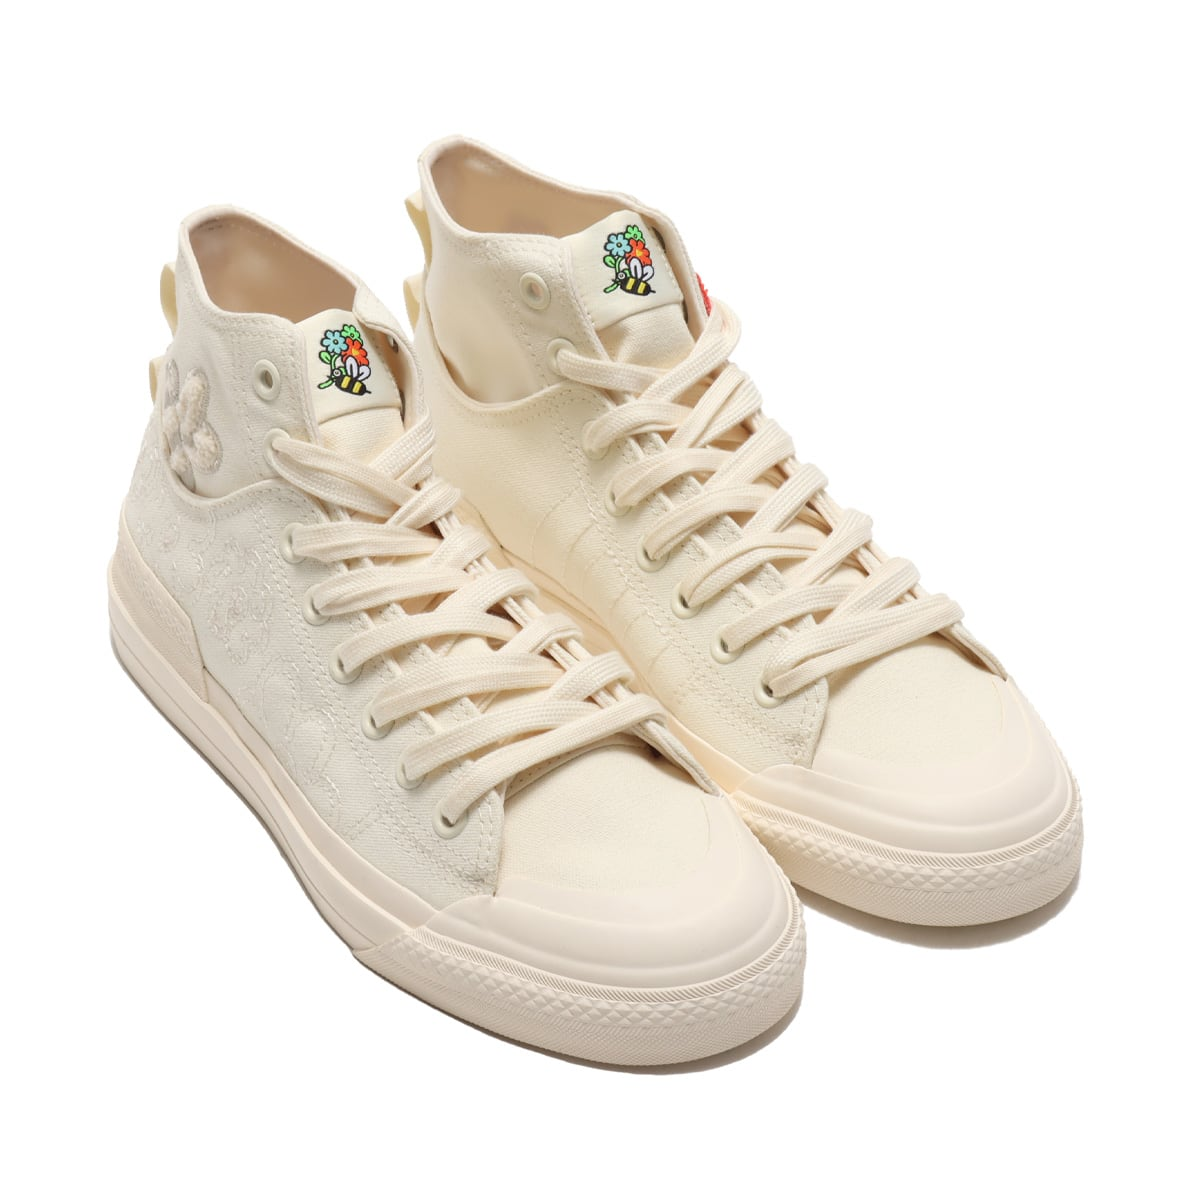 adidas NIZZA HI DL CORE WHITE/CORE WHITE/ORANGE TINT 21SS-S_photo_large